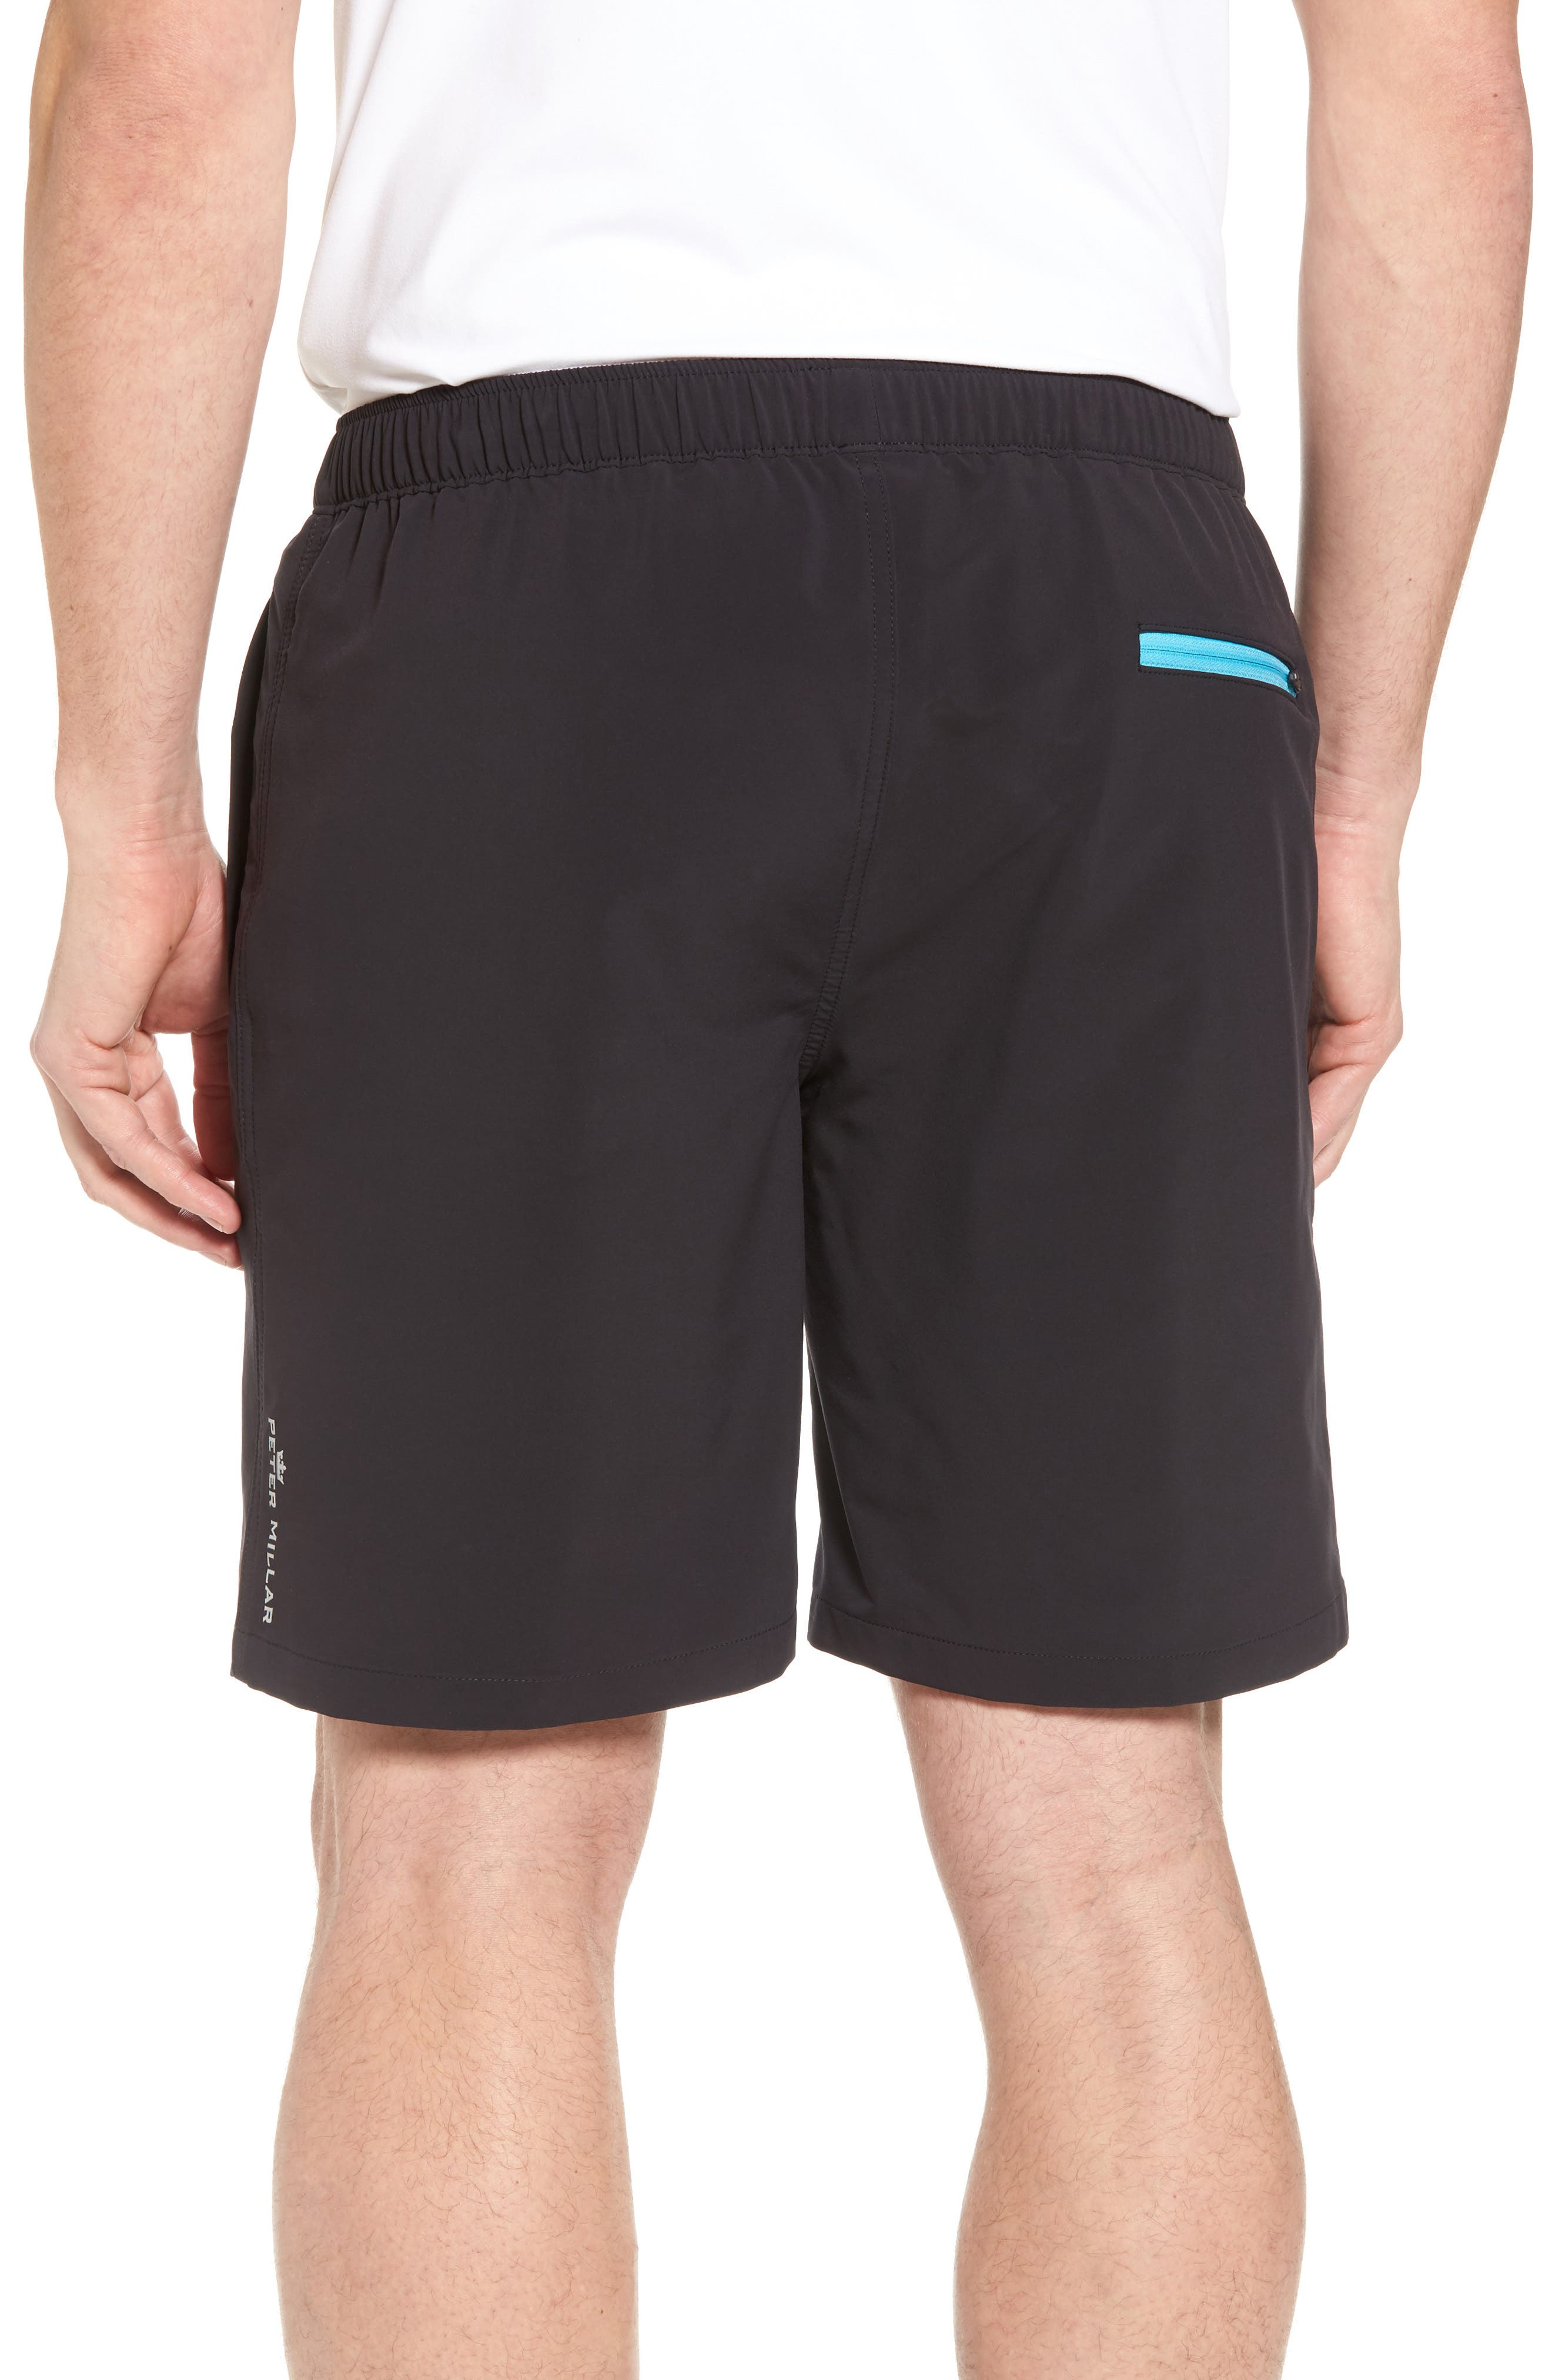 Oslo Sport Shorts,                             Alternate thumbnail 2, color,                             001